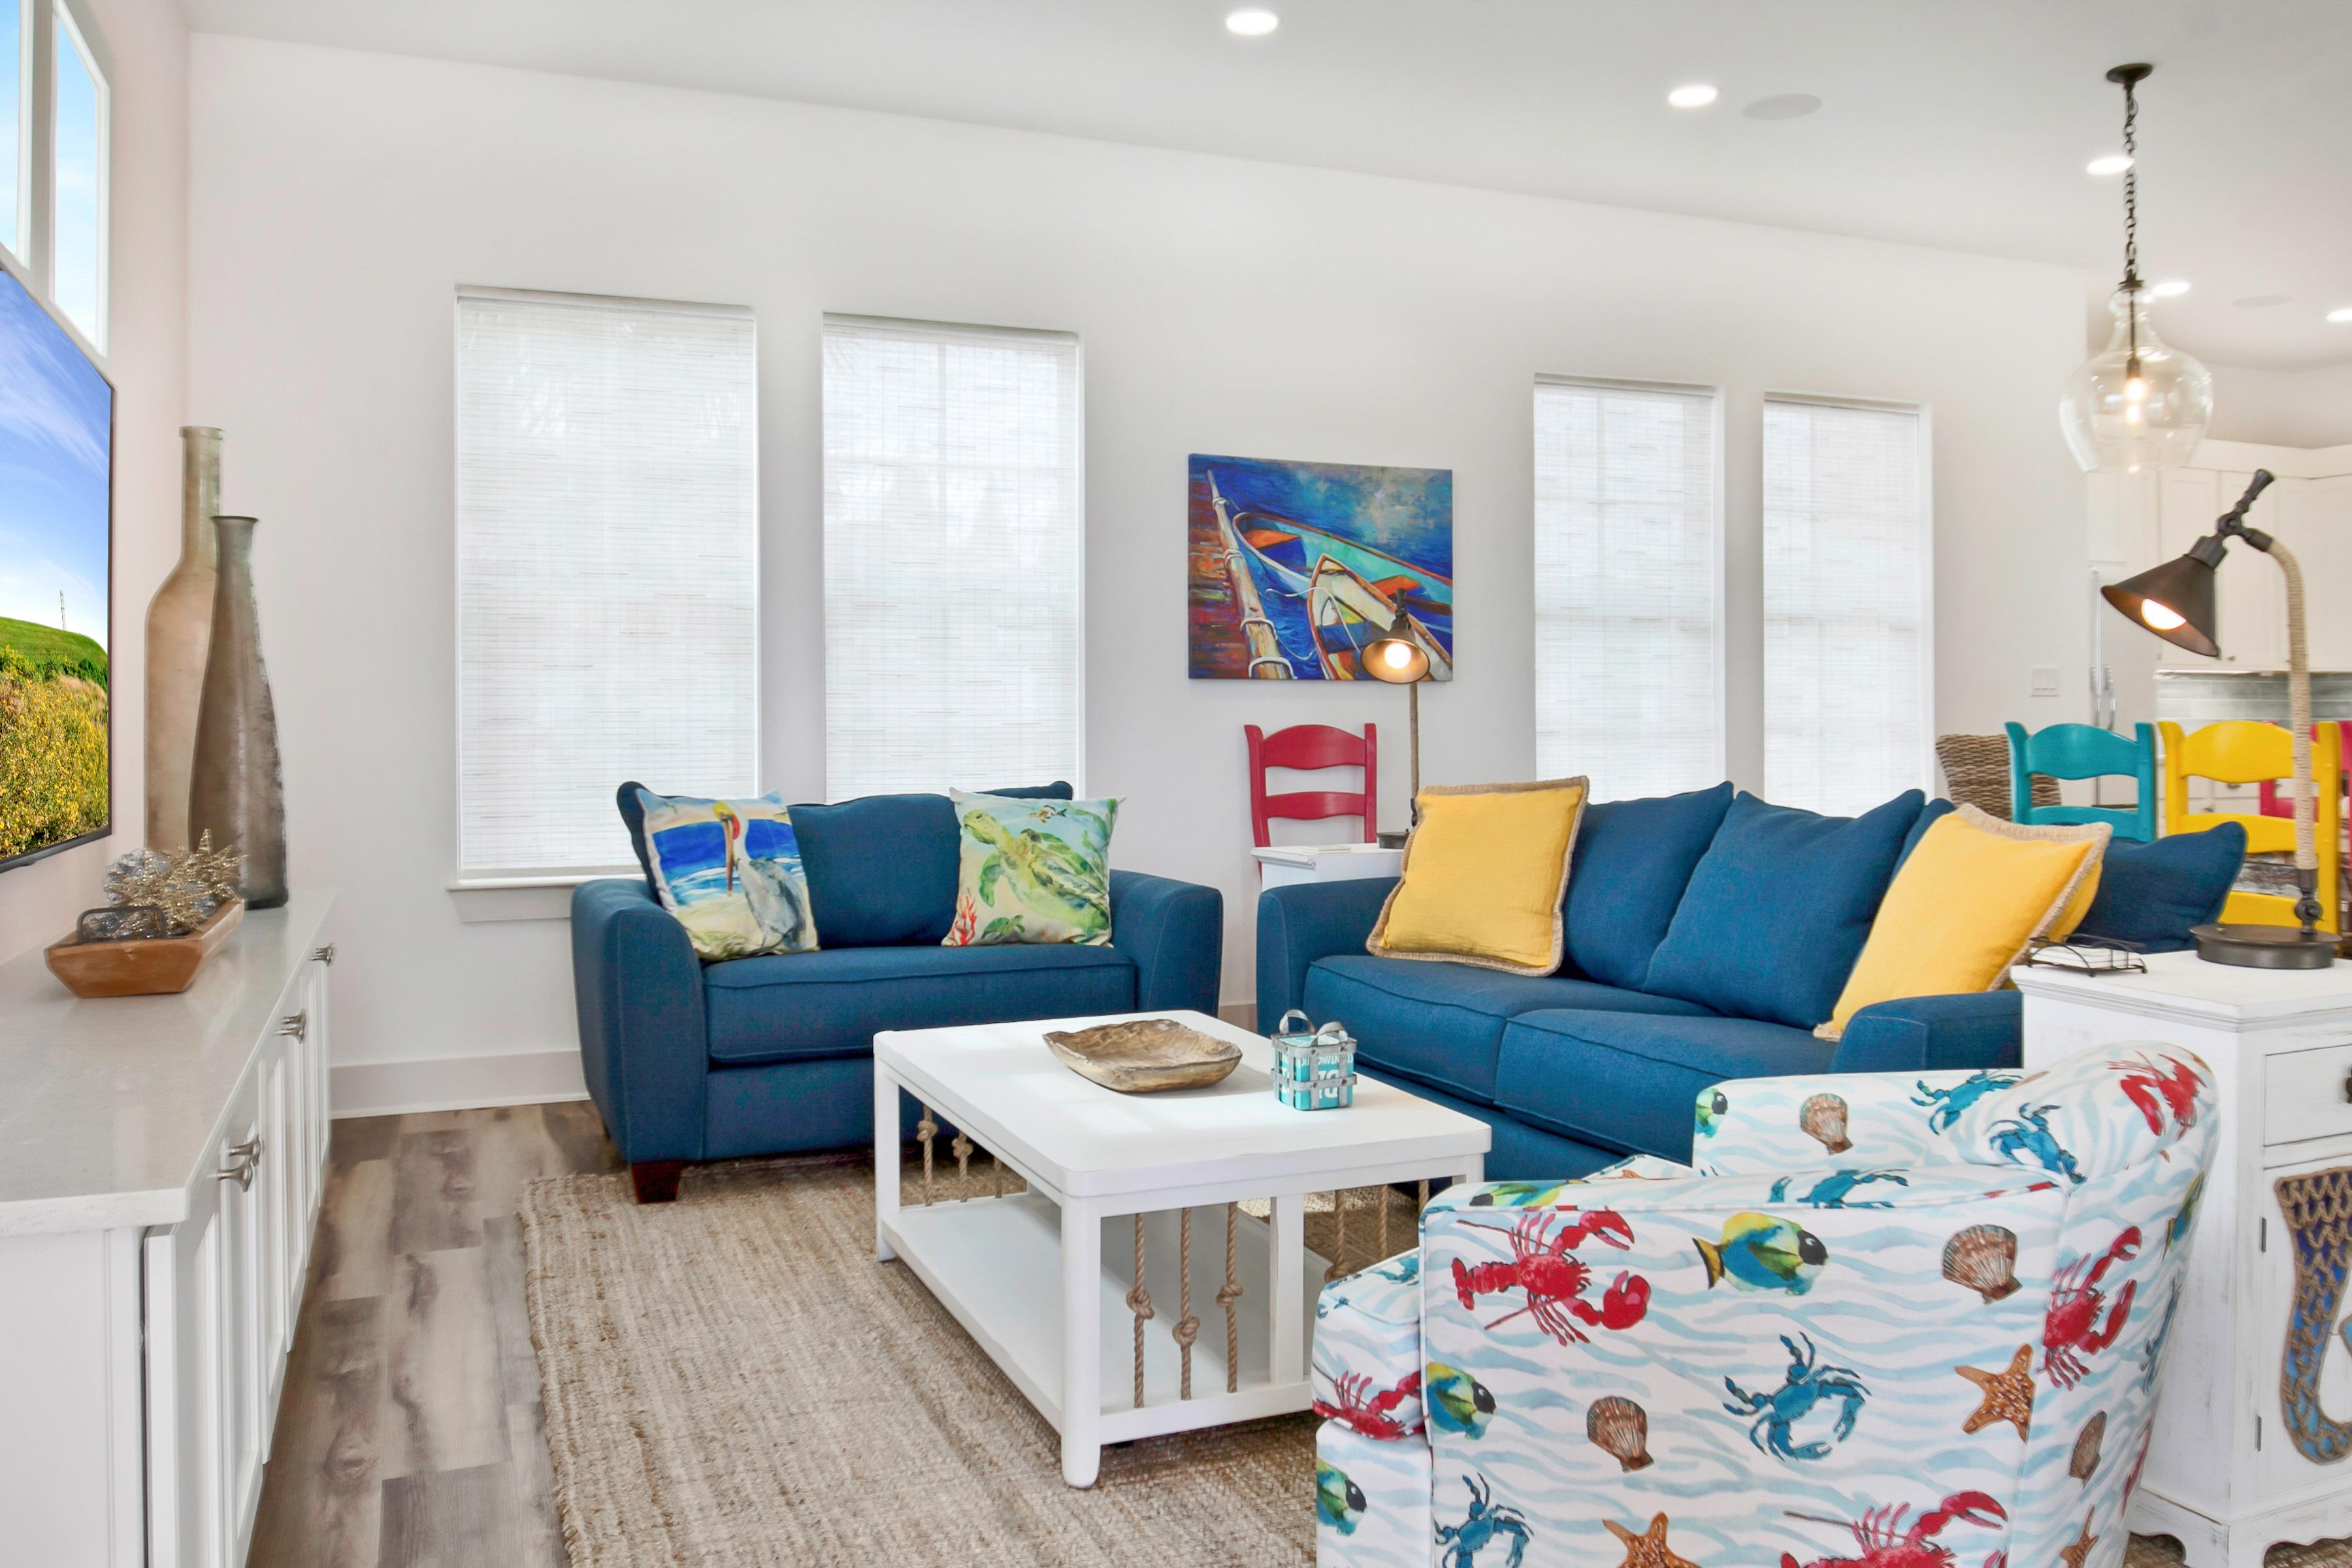 The sunny main living area is furnished with a sofa, an oversized chair for 2, and a plush rocking chair.